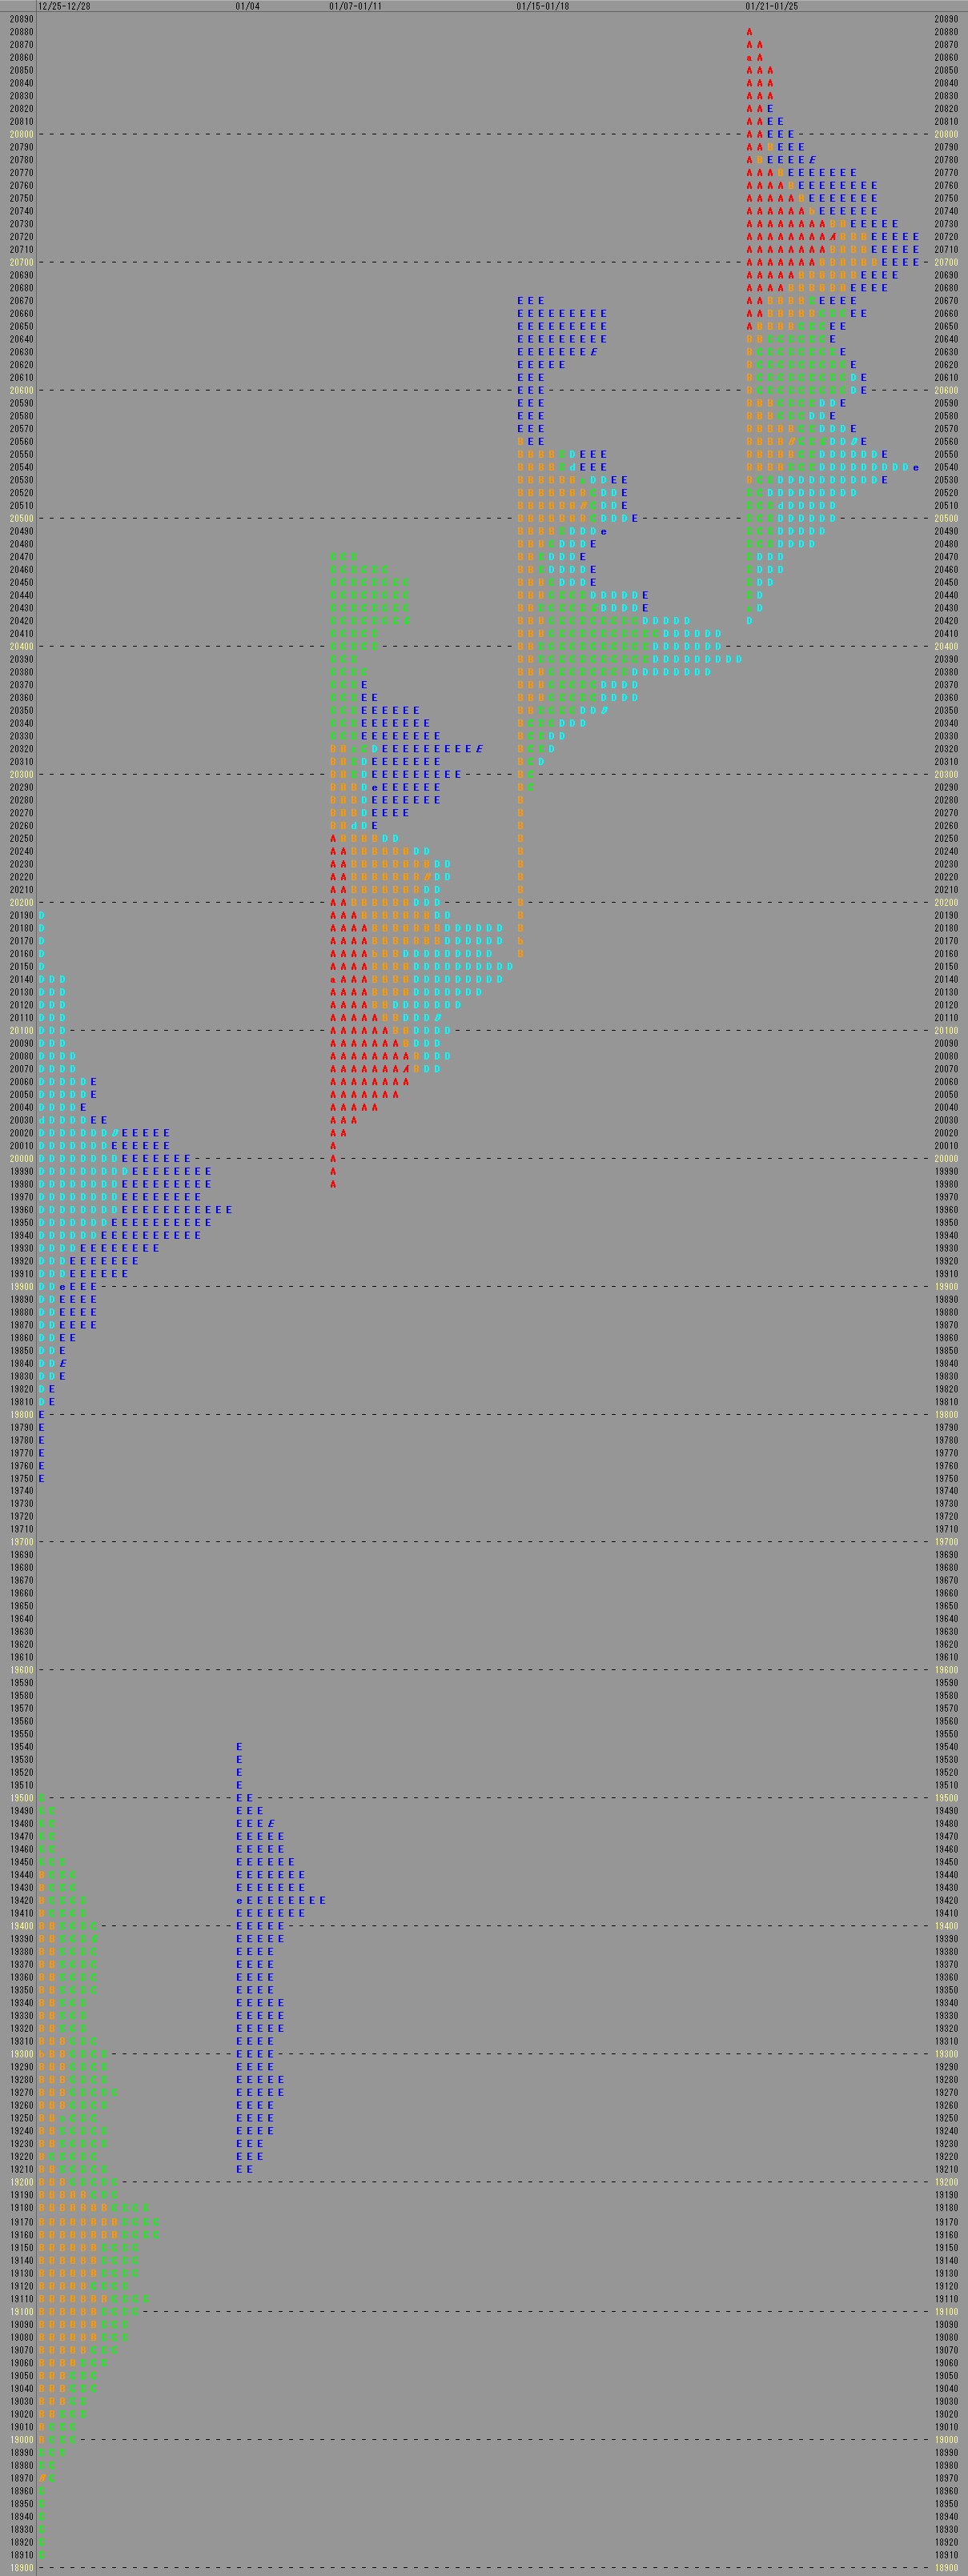 w20190125.png